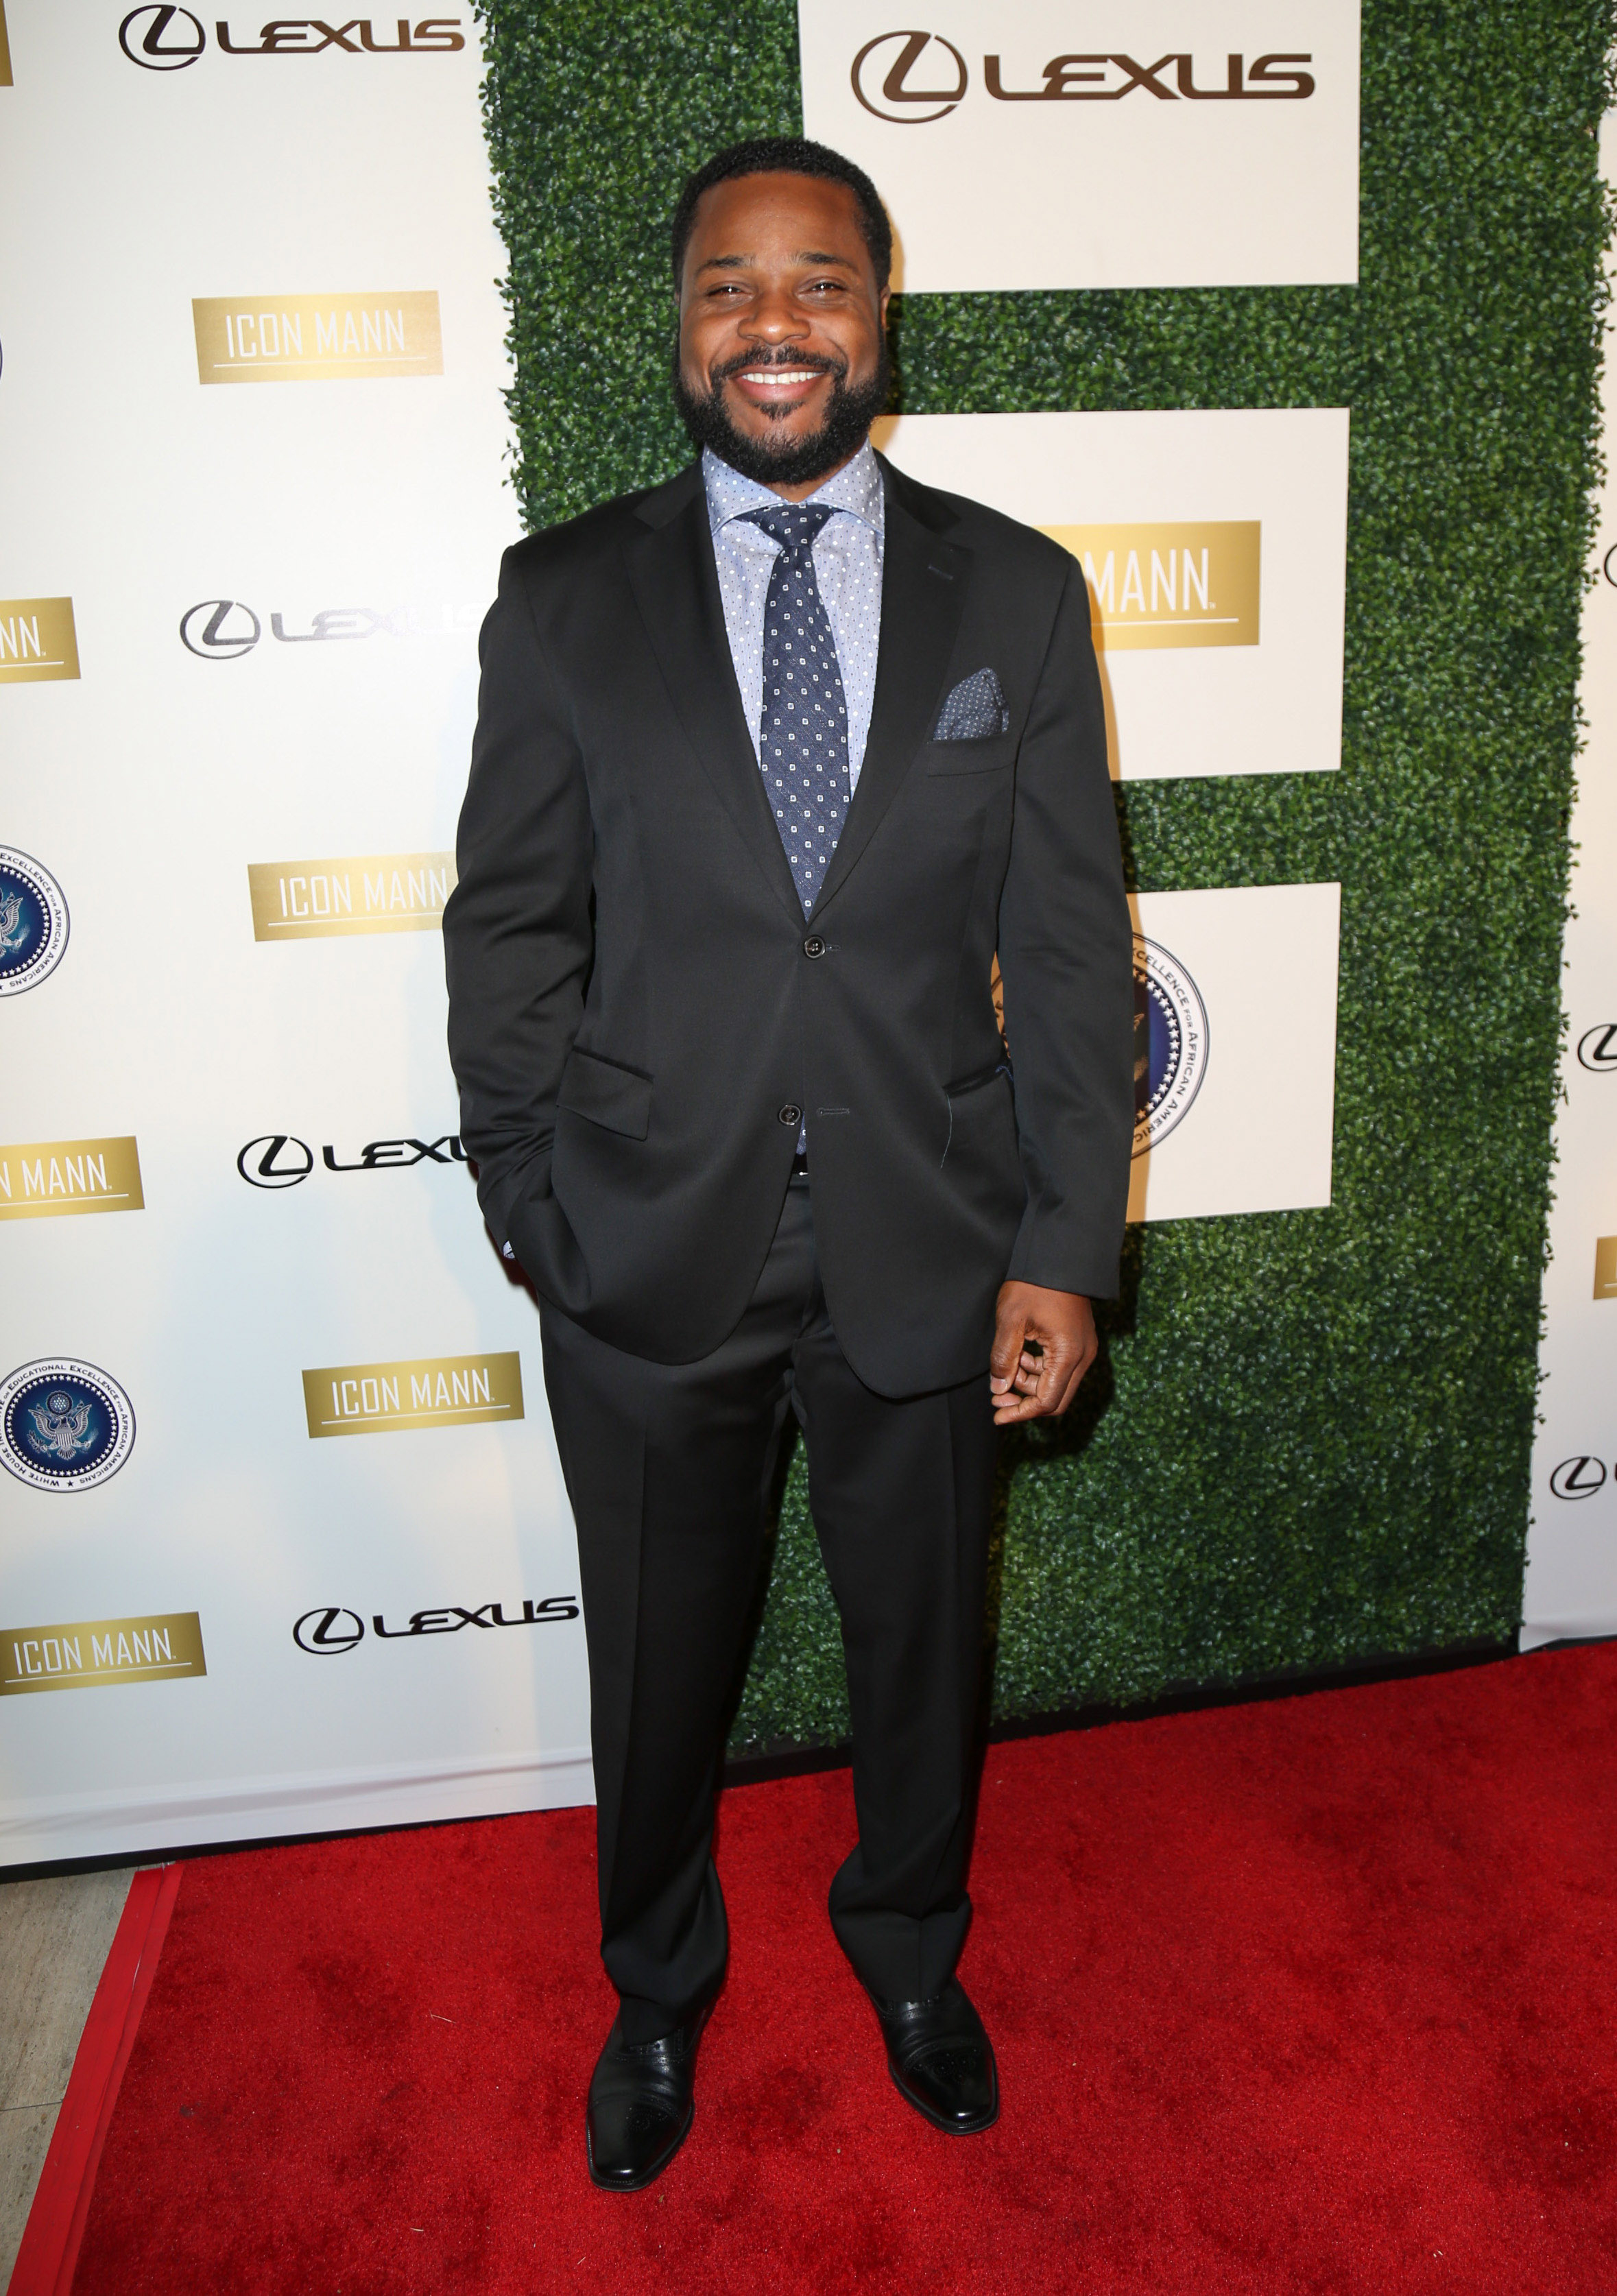 02/26/2016 - Malcolm-Jamal Warner - ICON MANN's 4th Annual Power 50 Dinner - Arrivals - Mr. C Beverly Hills, 1224 Beverwil Drive - Los Angeles, CA, USA - Keywords: Vertical, Person, People, Red Carpet Event, Arrival, Portrait, Photography, Photograph, Arts Culture and Entertainment, Celebrities, Celebrity, Topix, Bestof, California Orientation: Portrait Face Count: 1 - False - Photo Credit: Guillermo Proano / PR Photos - Contact (1-866-551-7827) - Portrait Face Count: 1